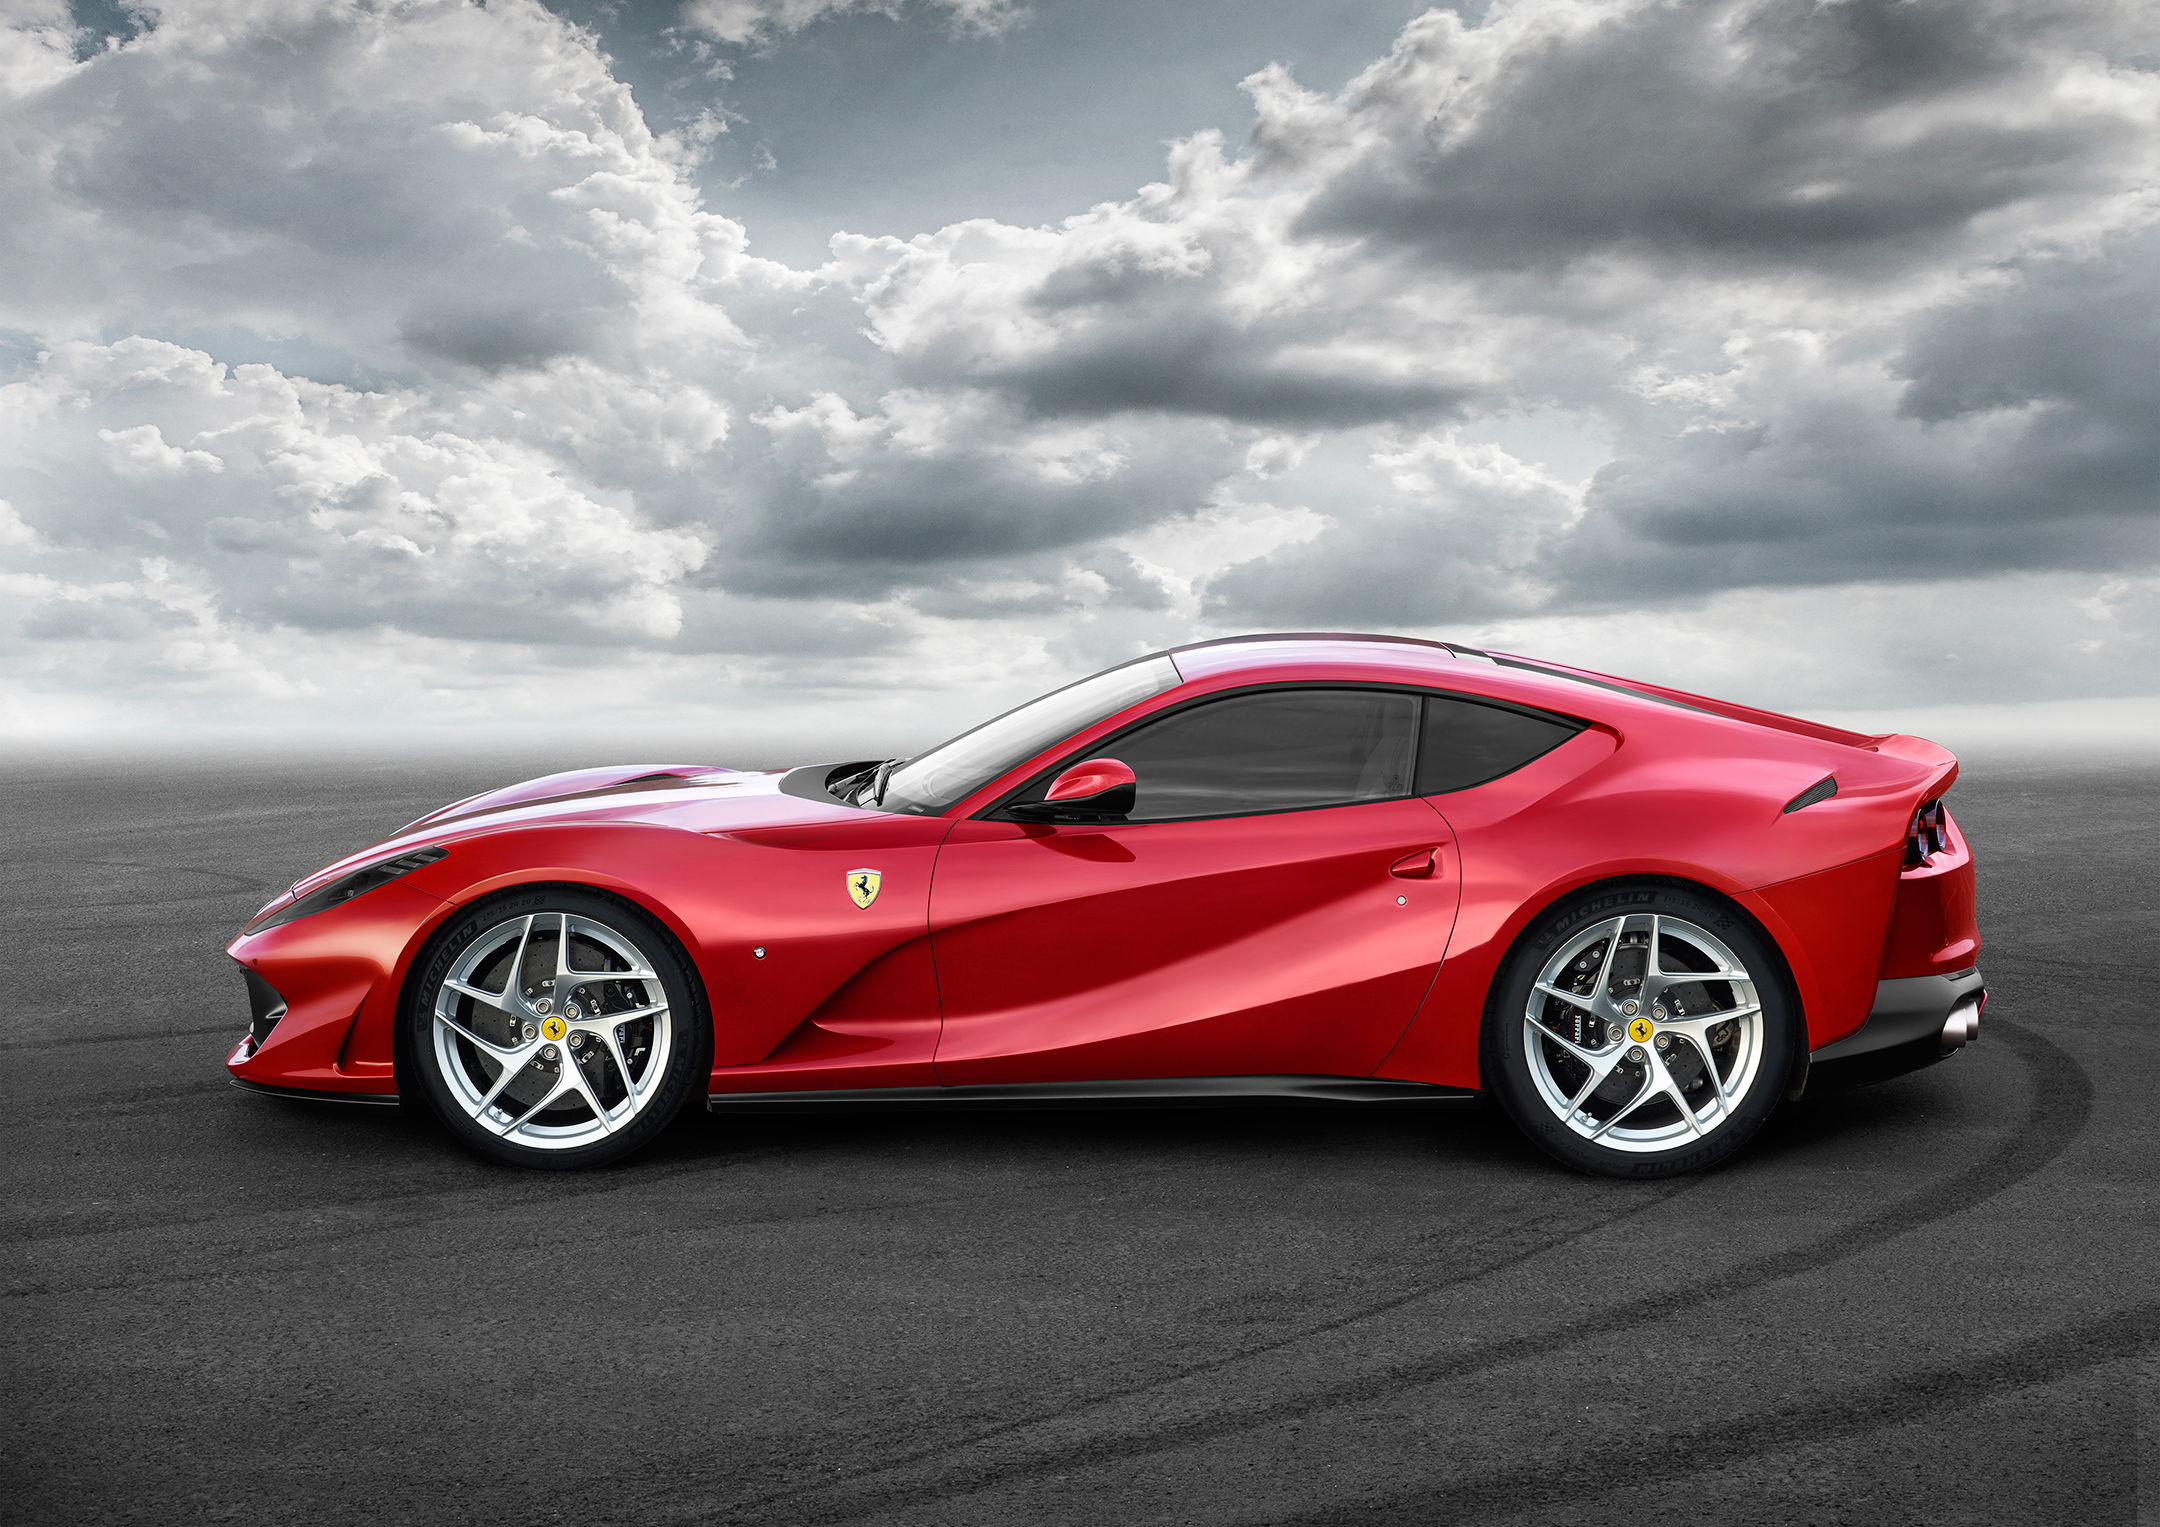 Ferrari 812 Superfast - 2017 - profil / side-face